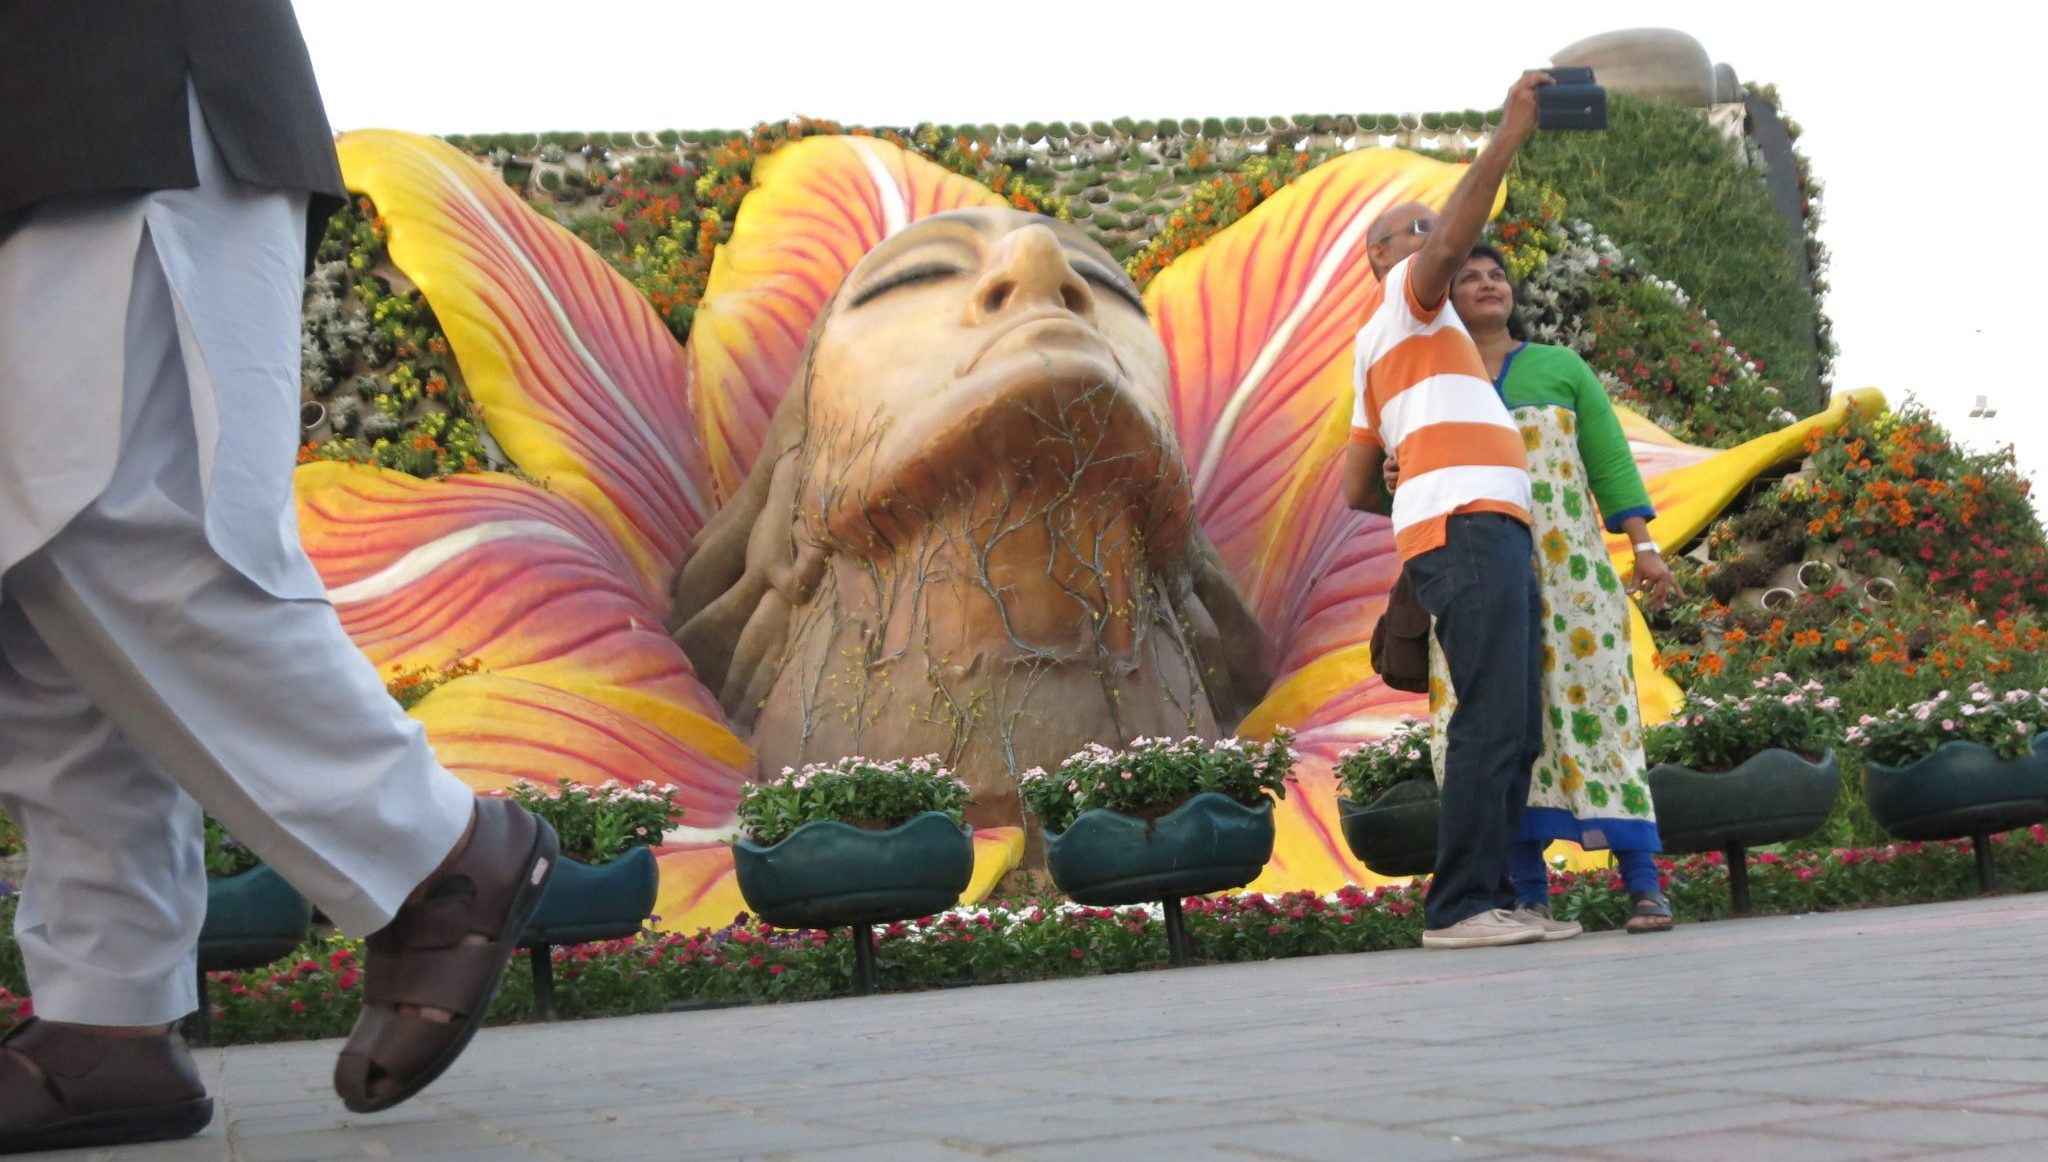 A giant male head seems to emerge from a flower in Dubai Miracle Garden.